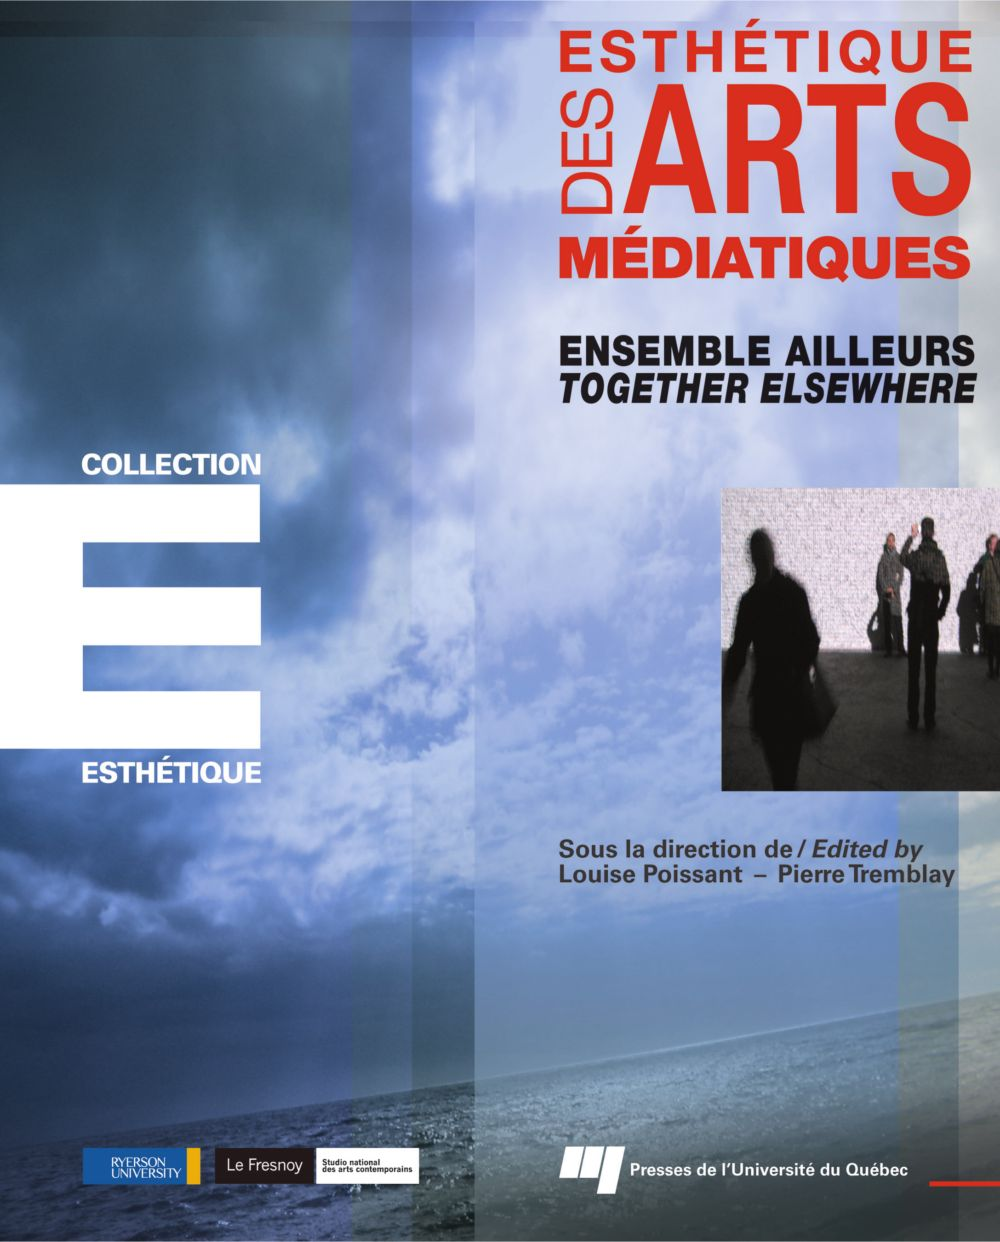 Ensemble ailleurs - Together Elsewhere